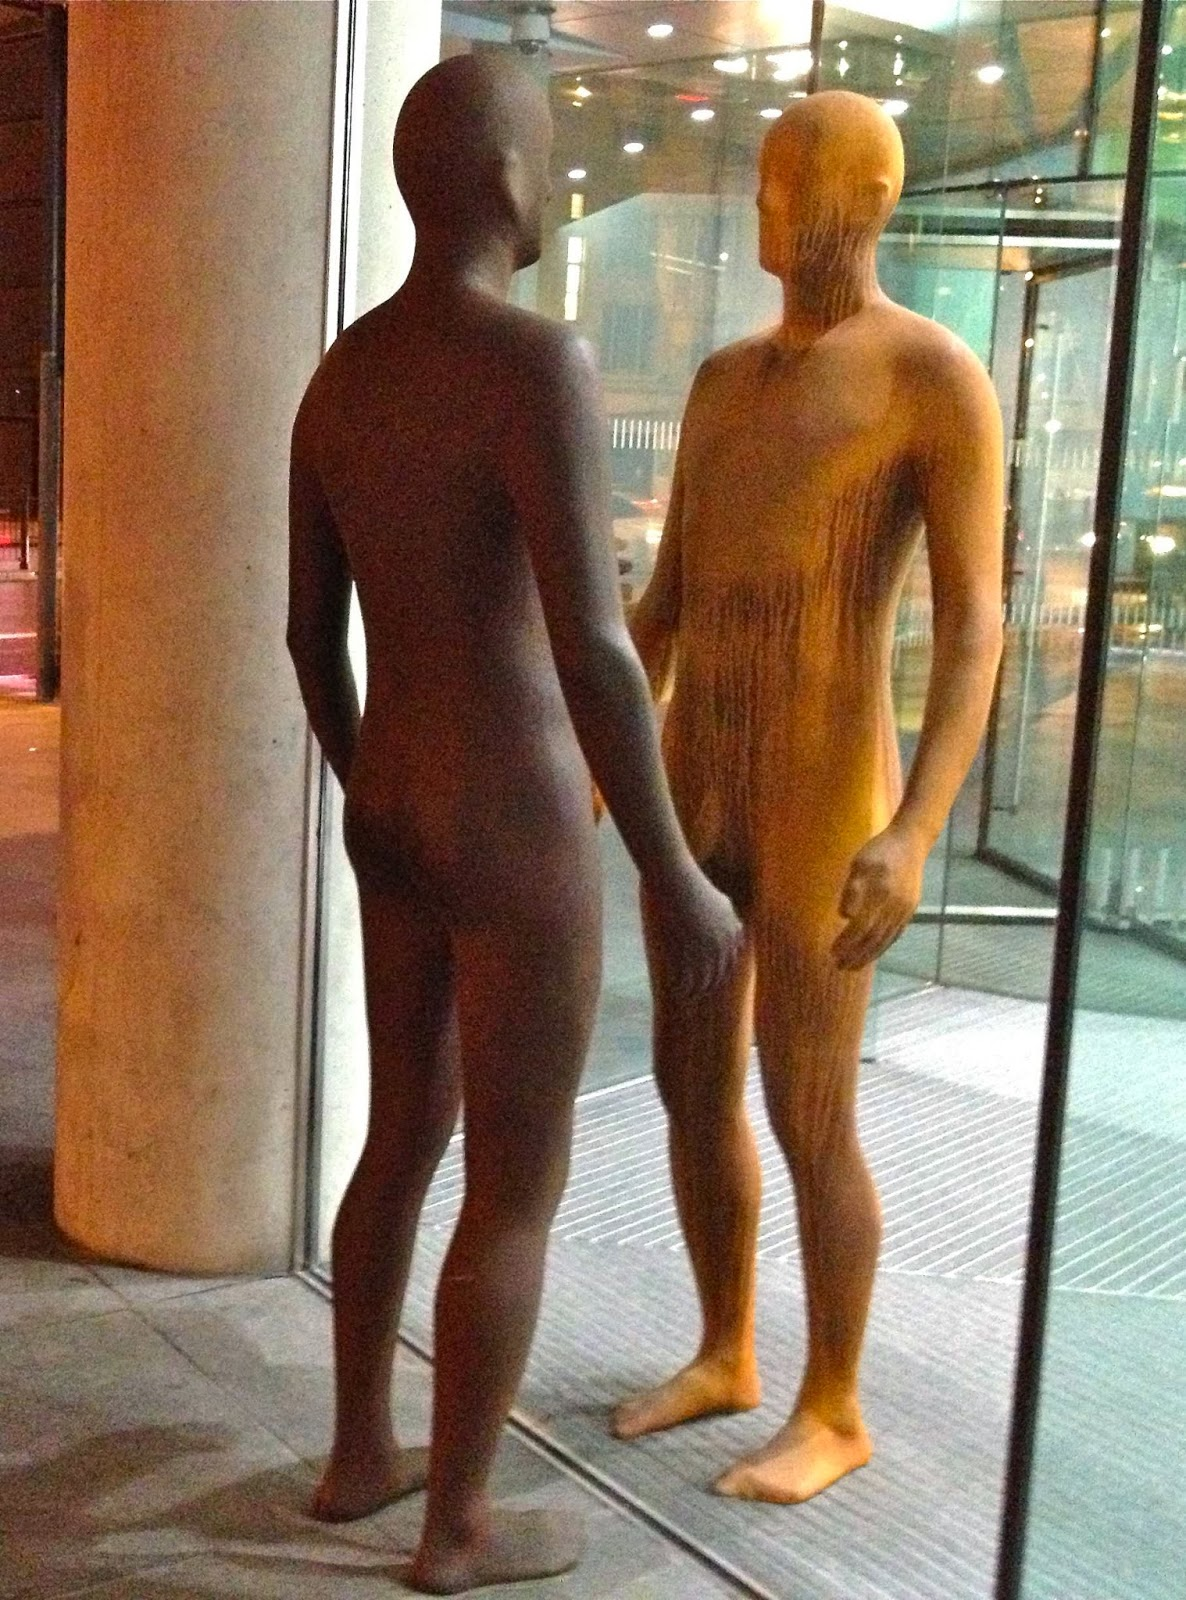 statues of 2 men facing each other